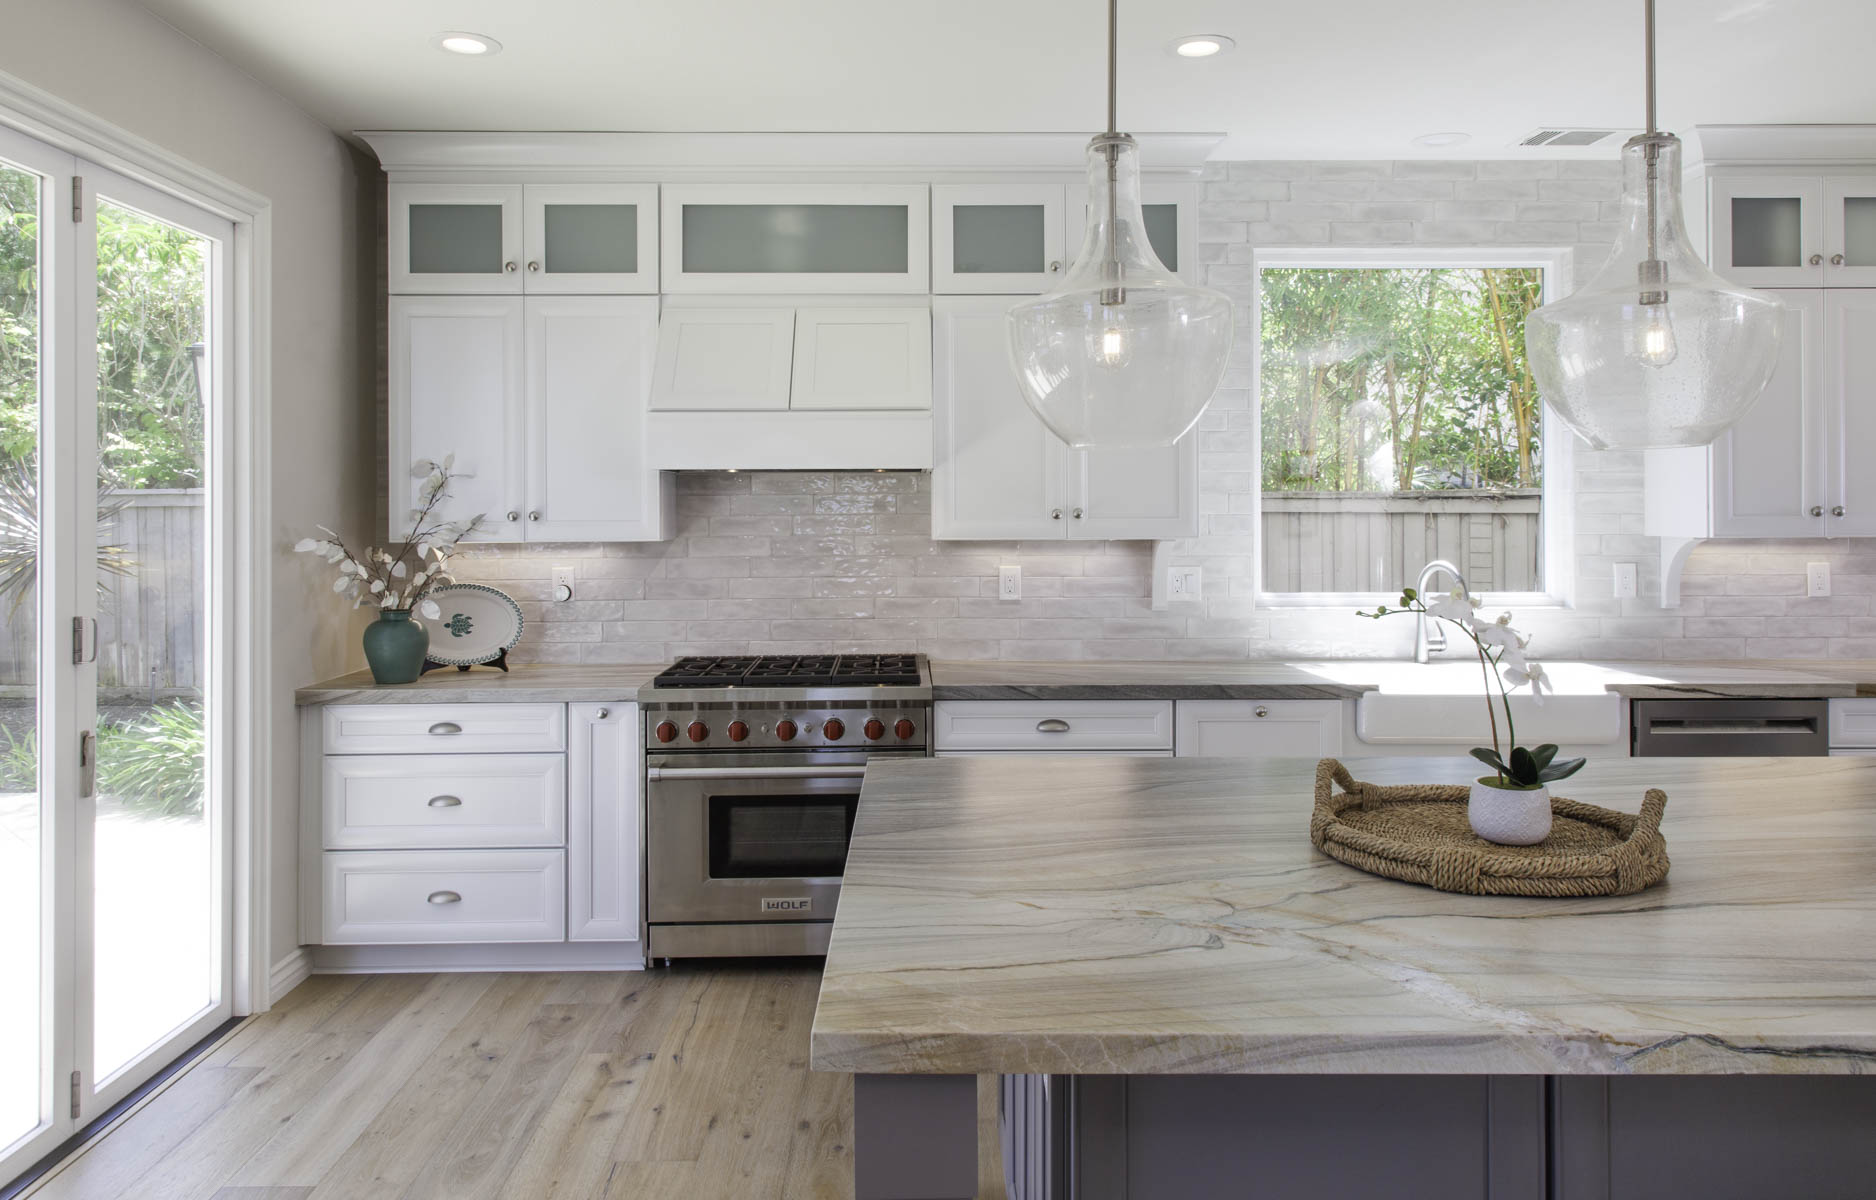 Hanging pendant lights and leather finish on quartzite countertop